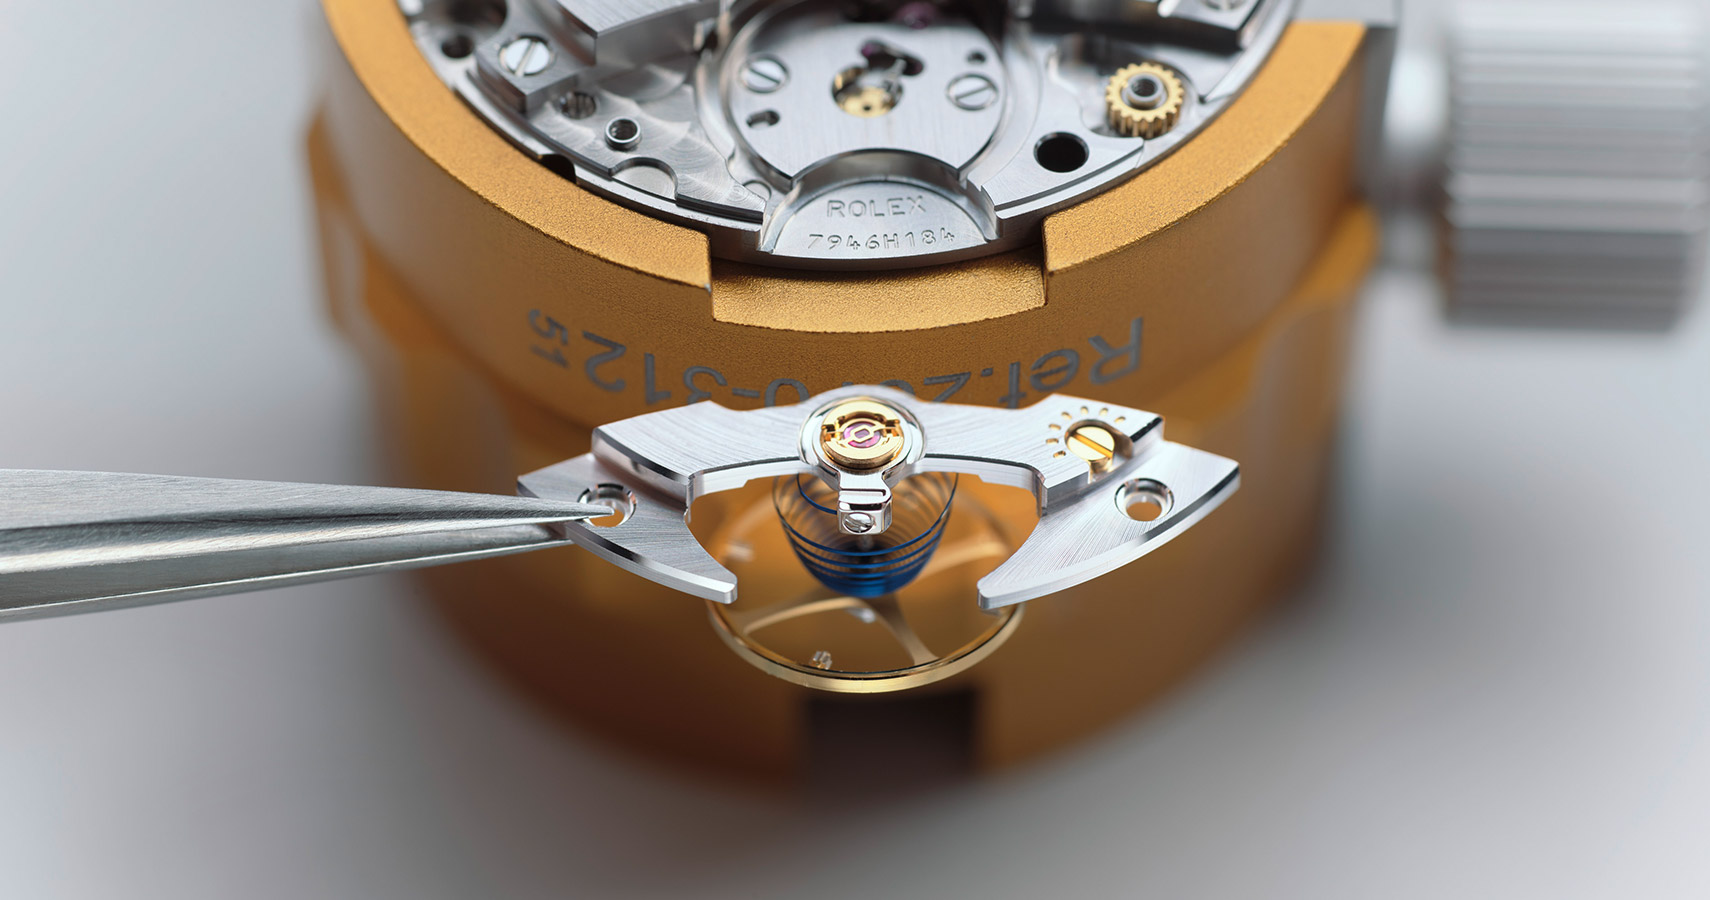 rolex servicing procedure assembly lubrication of the movement